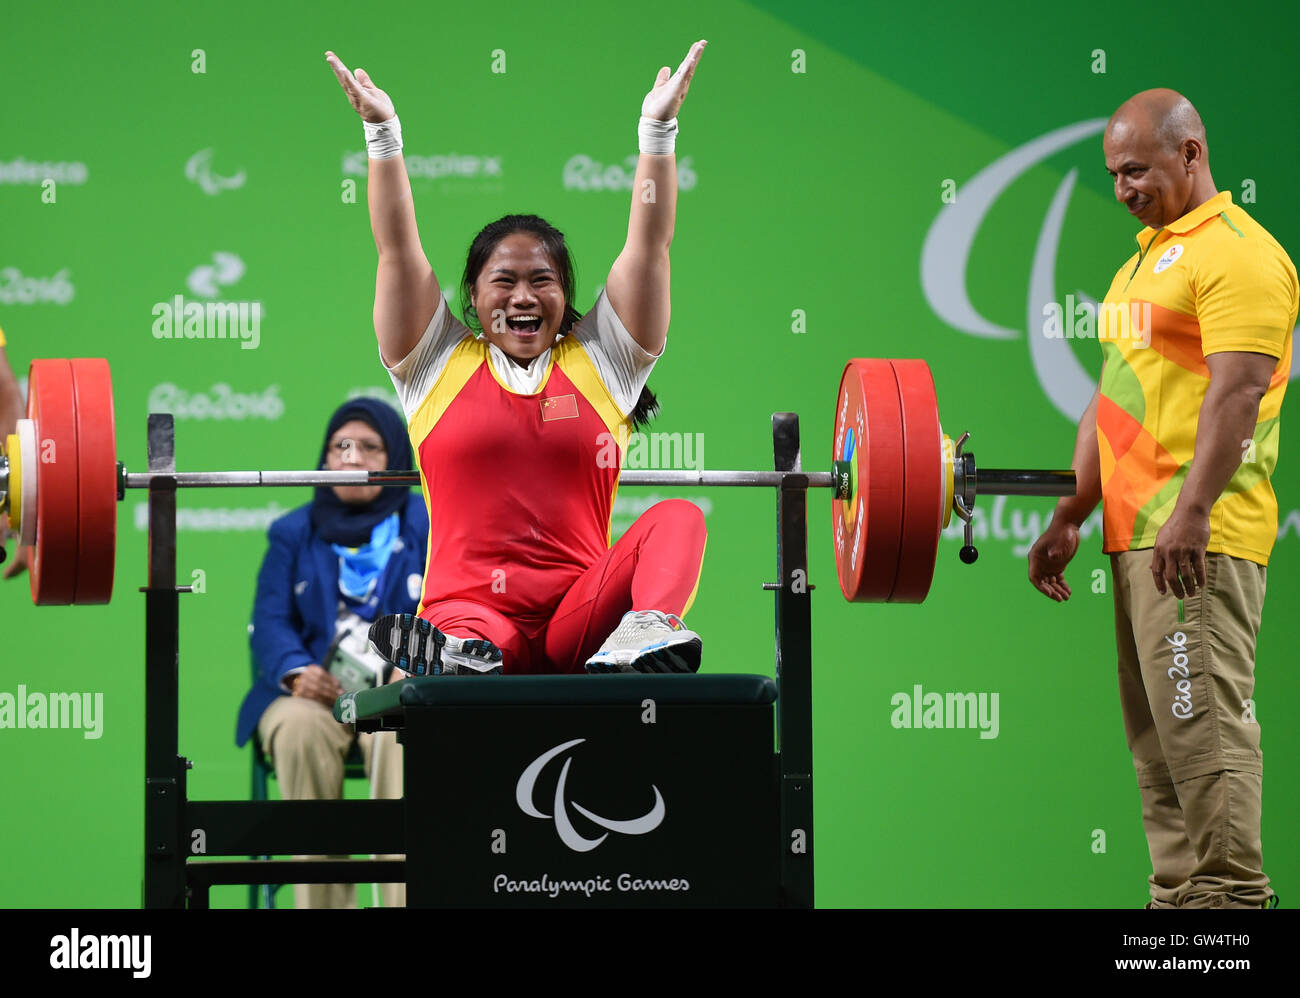 Taoying Fu 4 Paralympic medals in powerlifting